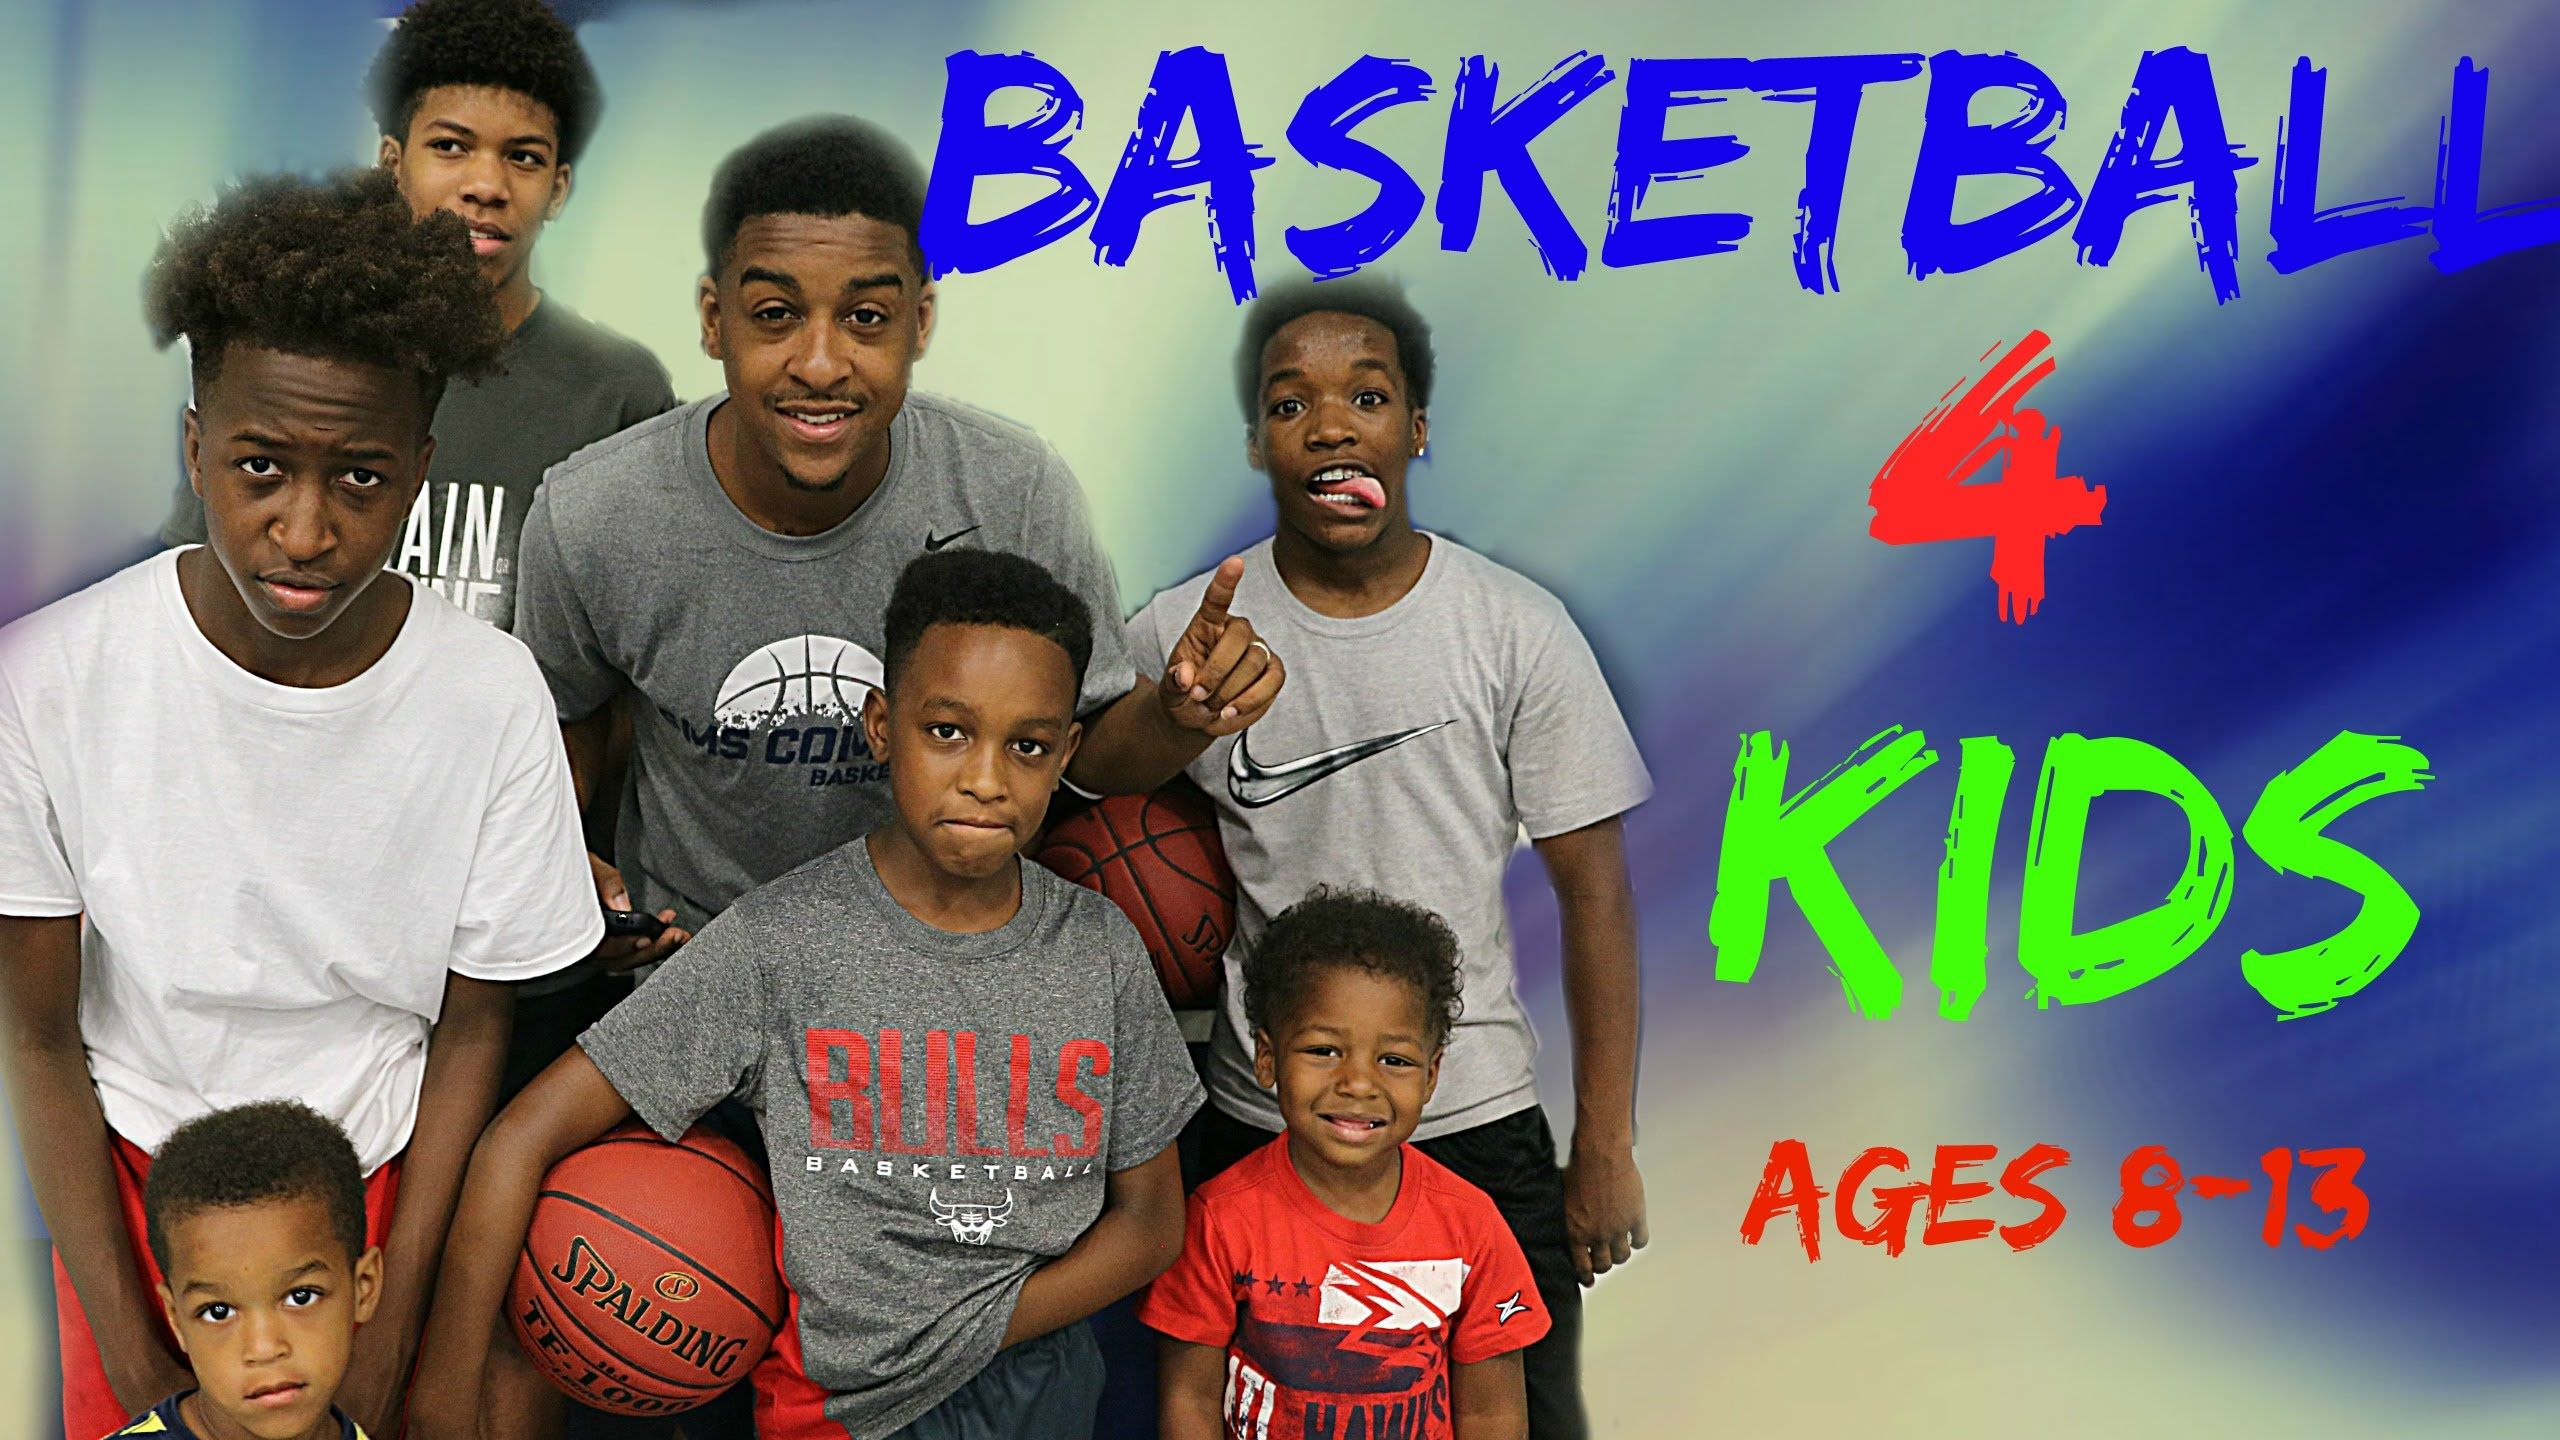 Youth Basketball Drills For Kids 8 13 Yr Old Basketball Workouts Basketball Drills For Kids